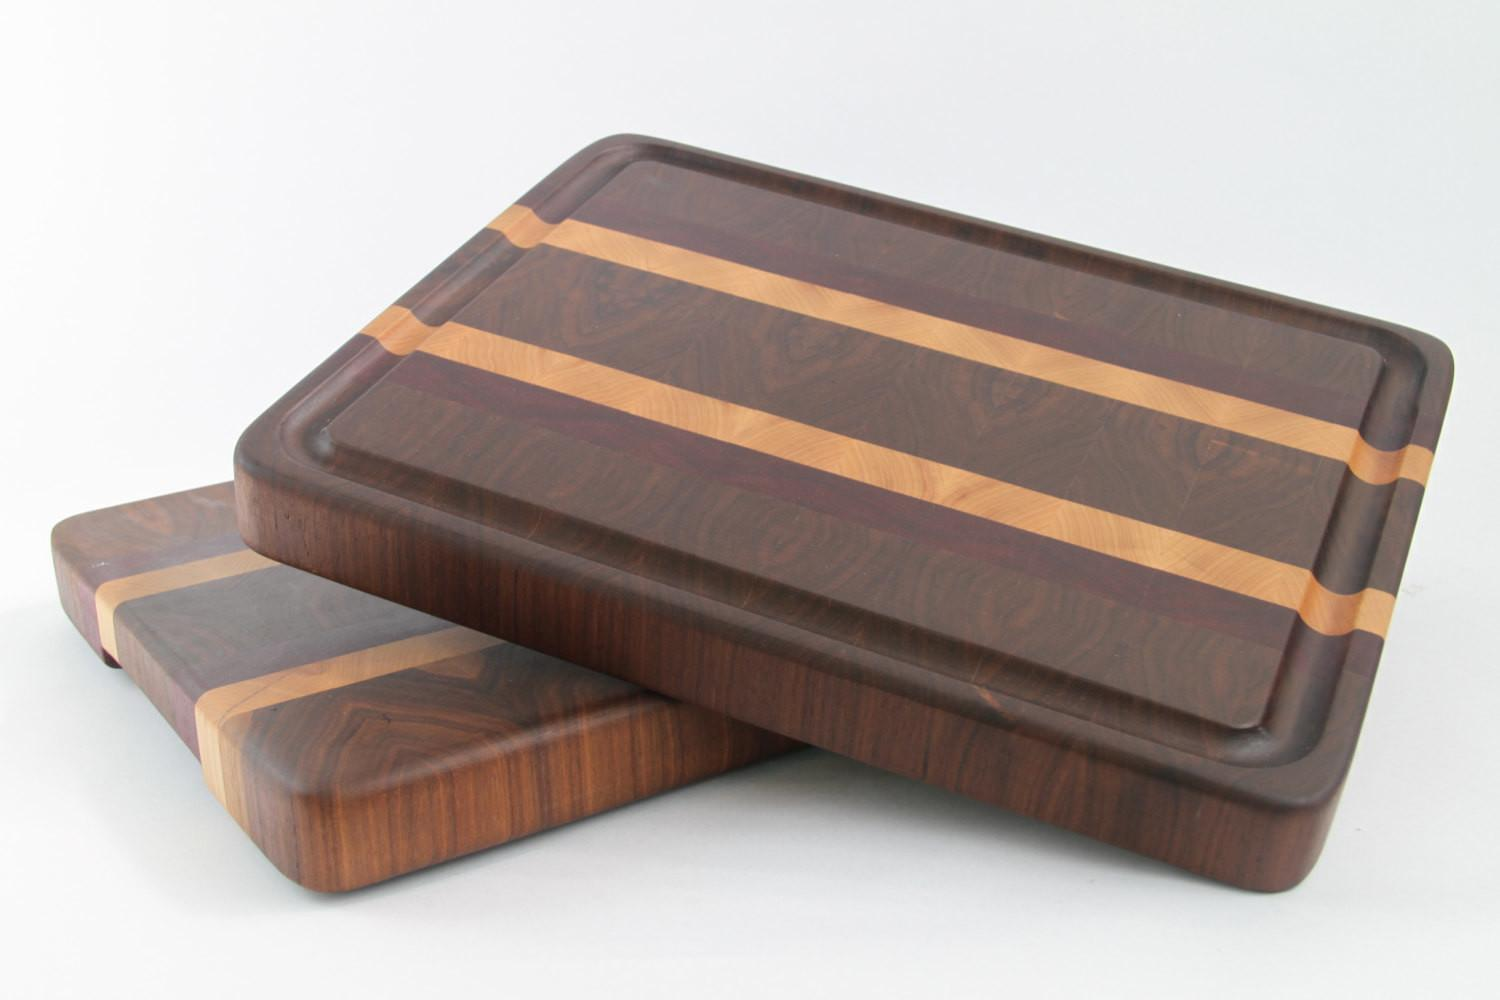 Handcrafted Wood Cutting Board End Grain Maple